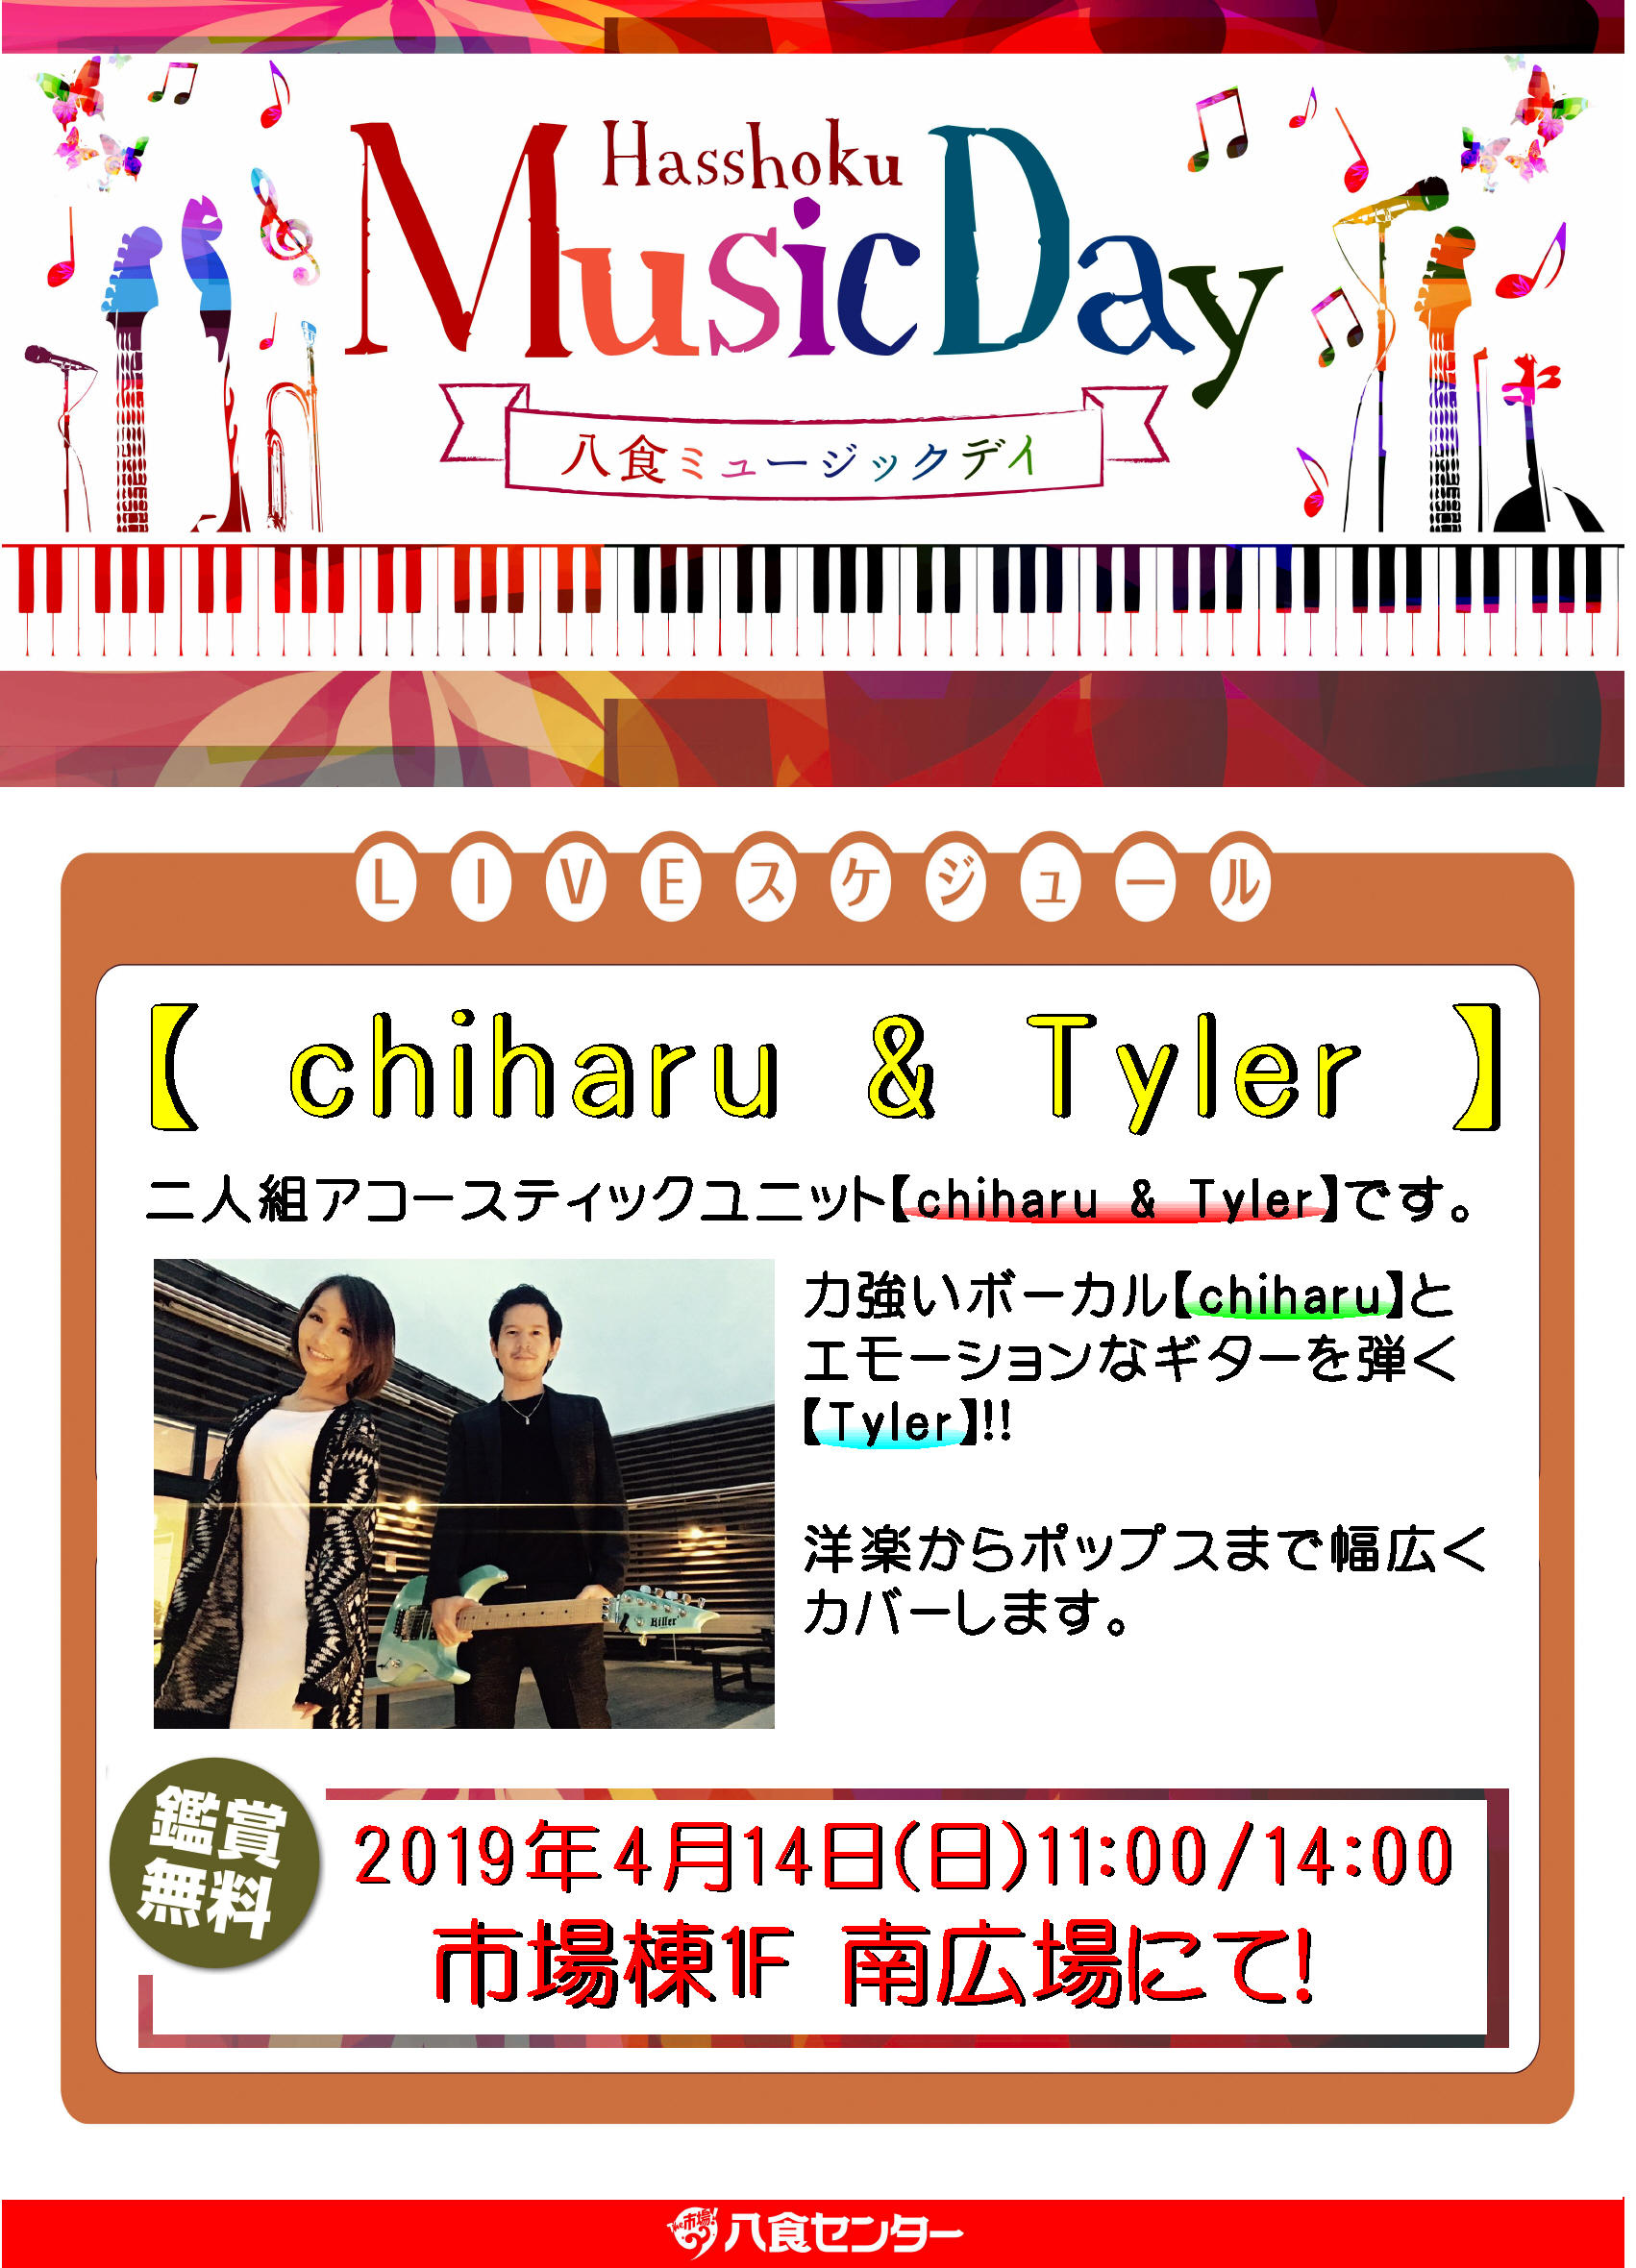 八食Music Day 【chiharu & Tyler】 4/14